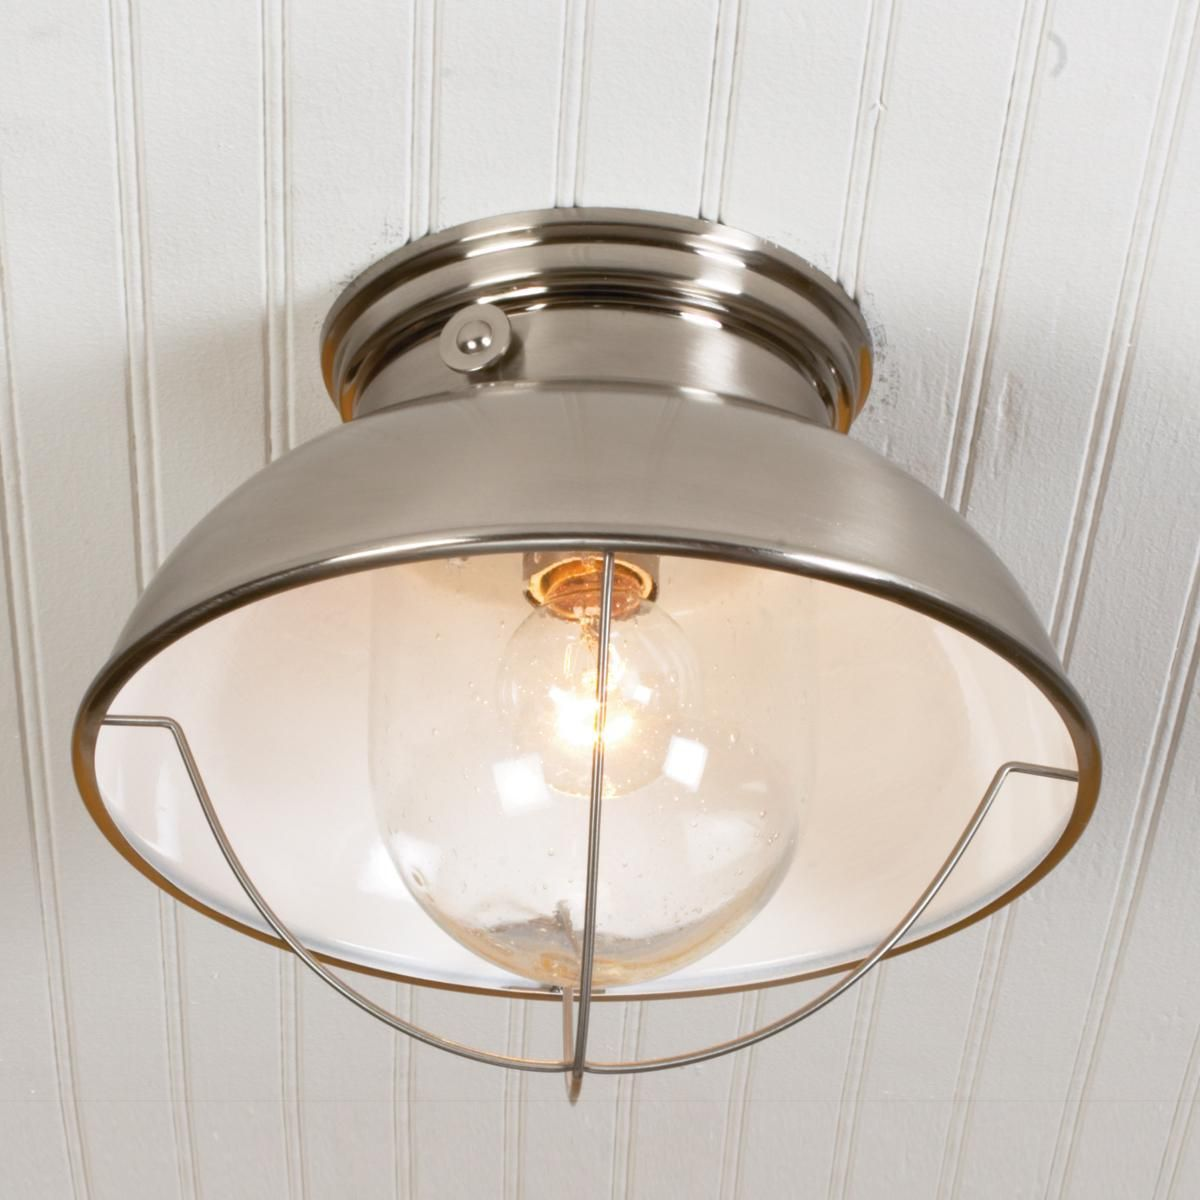 Nantucket ceiling light ceiling lights ceilings and brushed stainless steel - Stainless steel kitchen pendant light ...